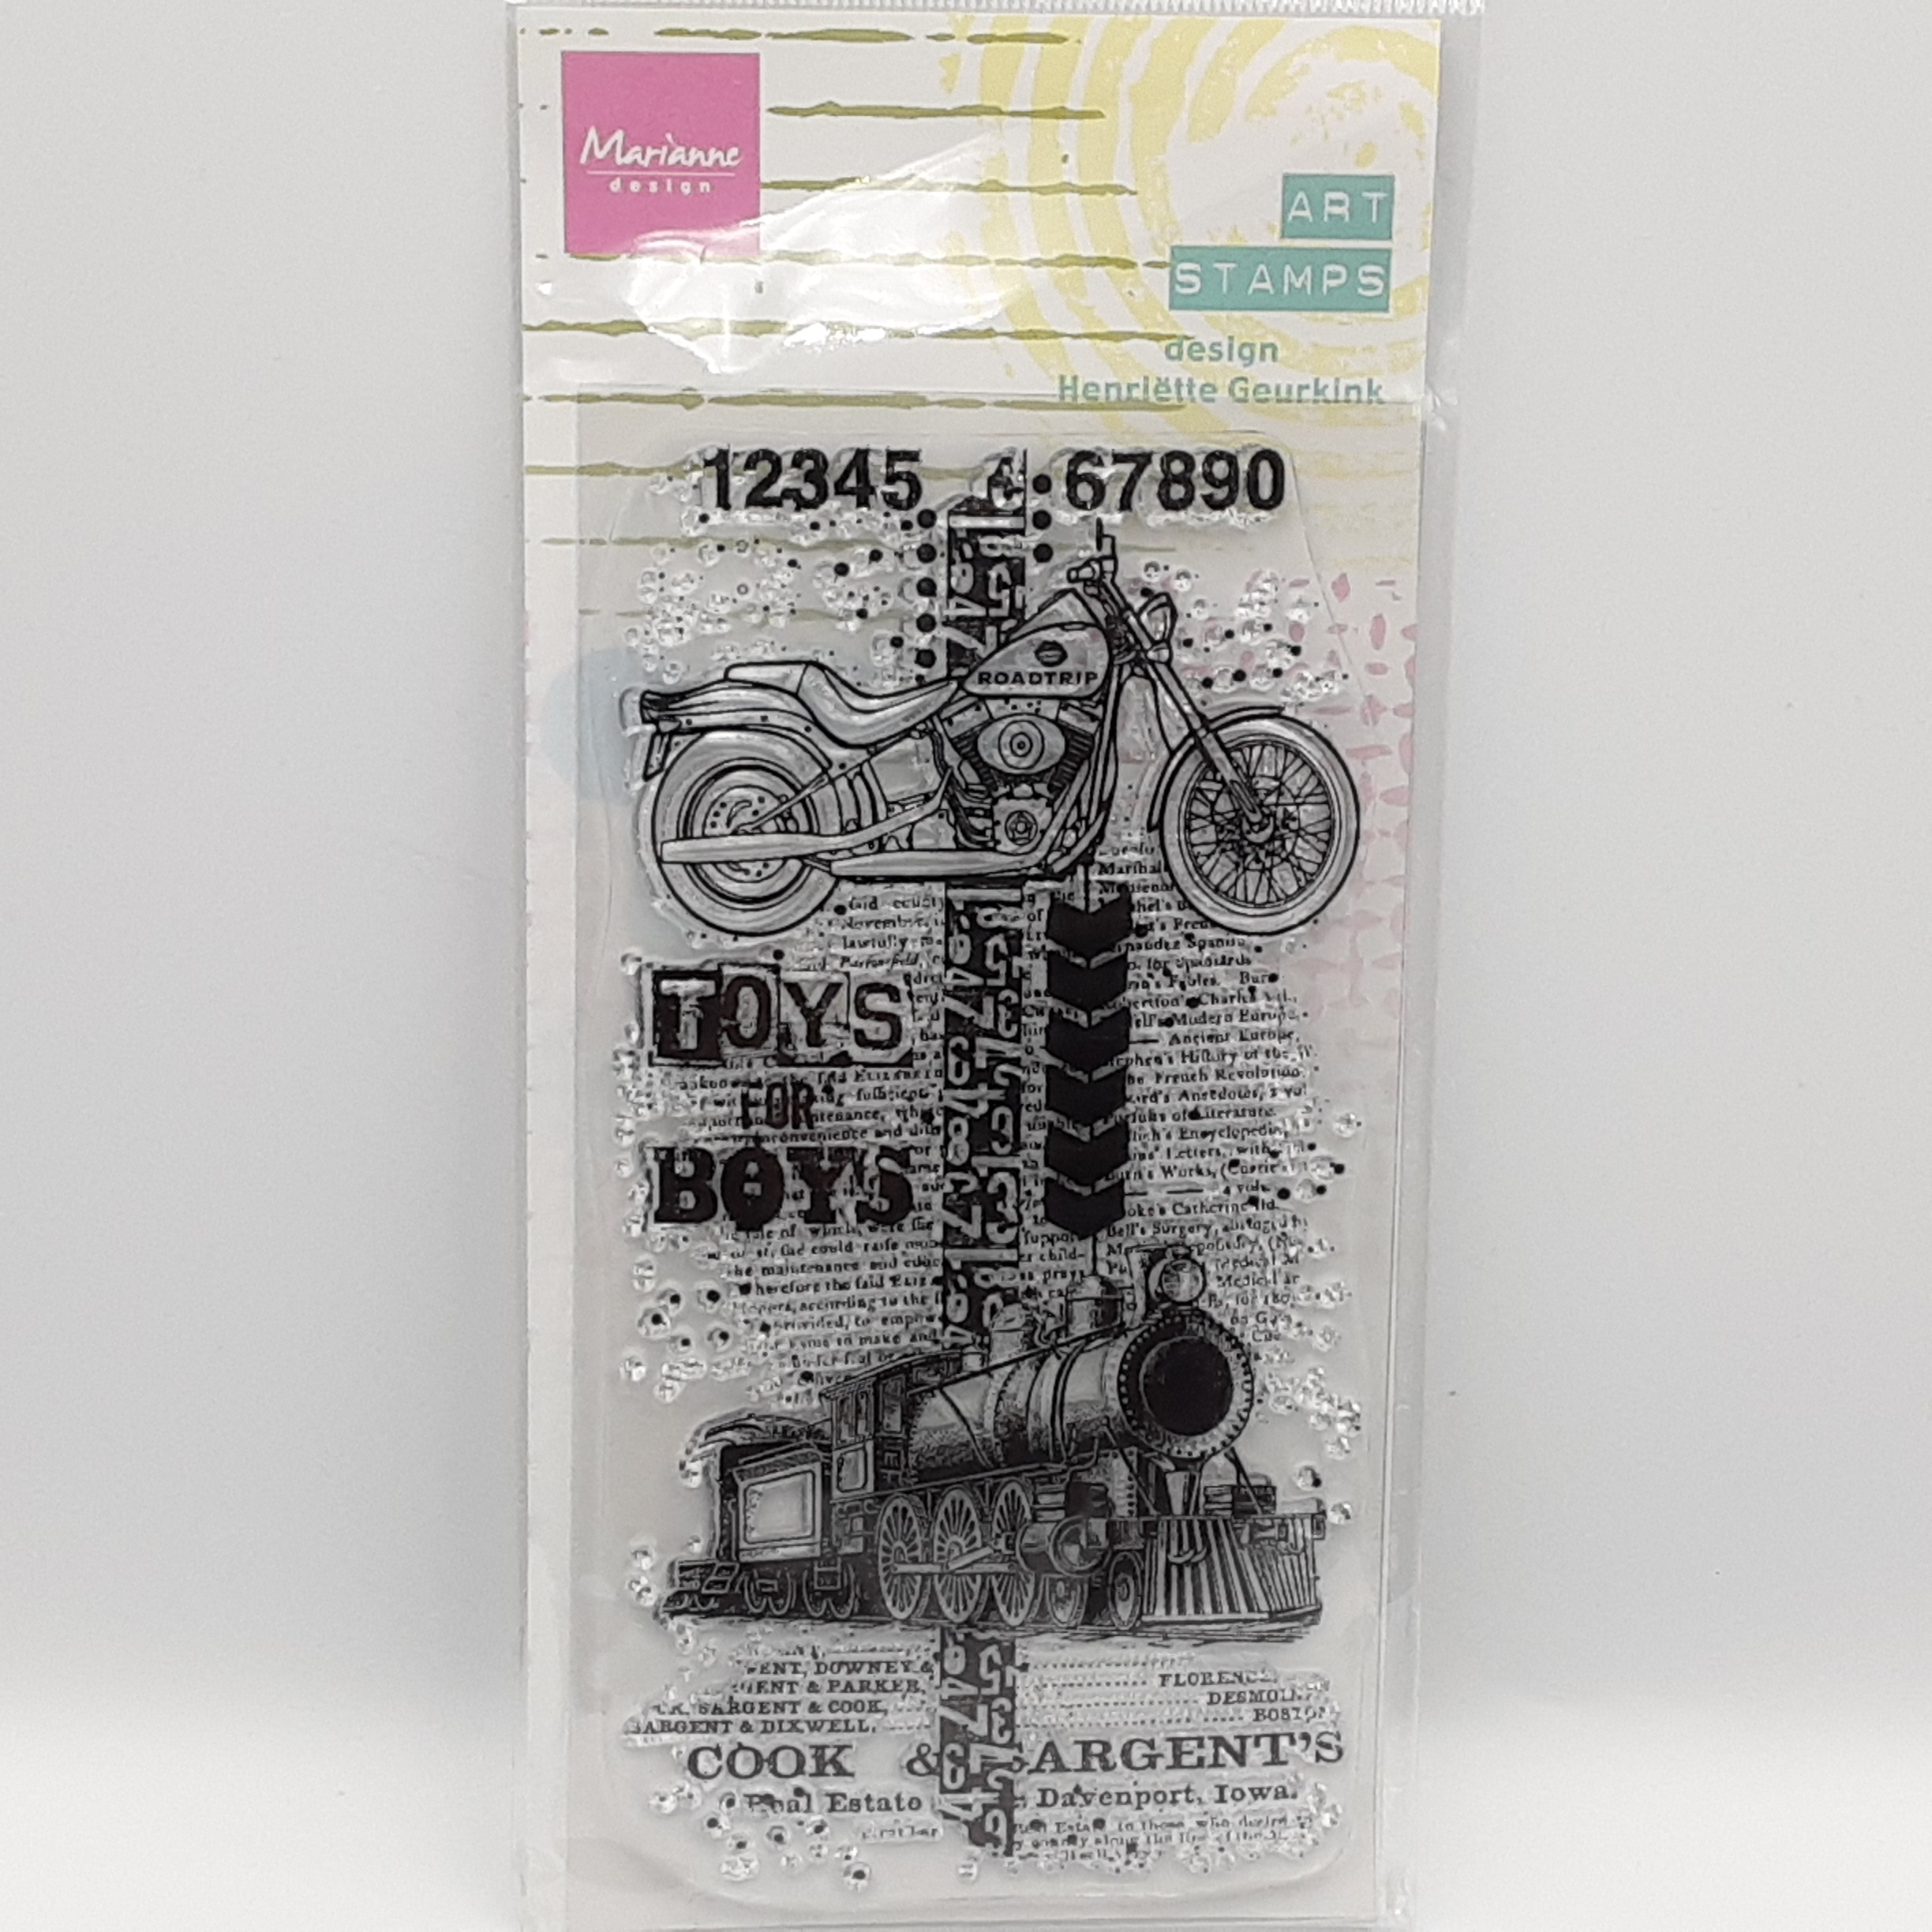 Toys for boys art stamps